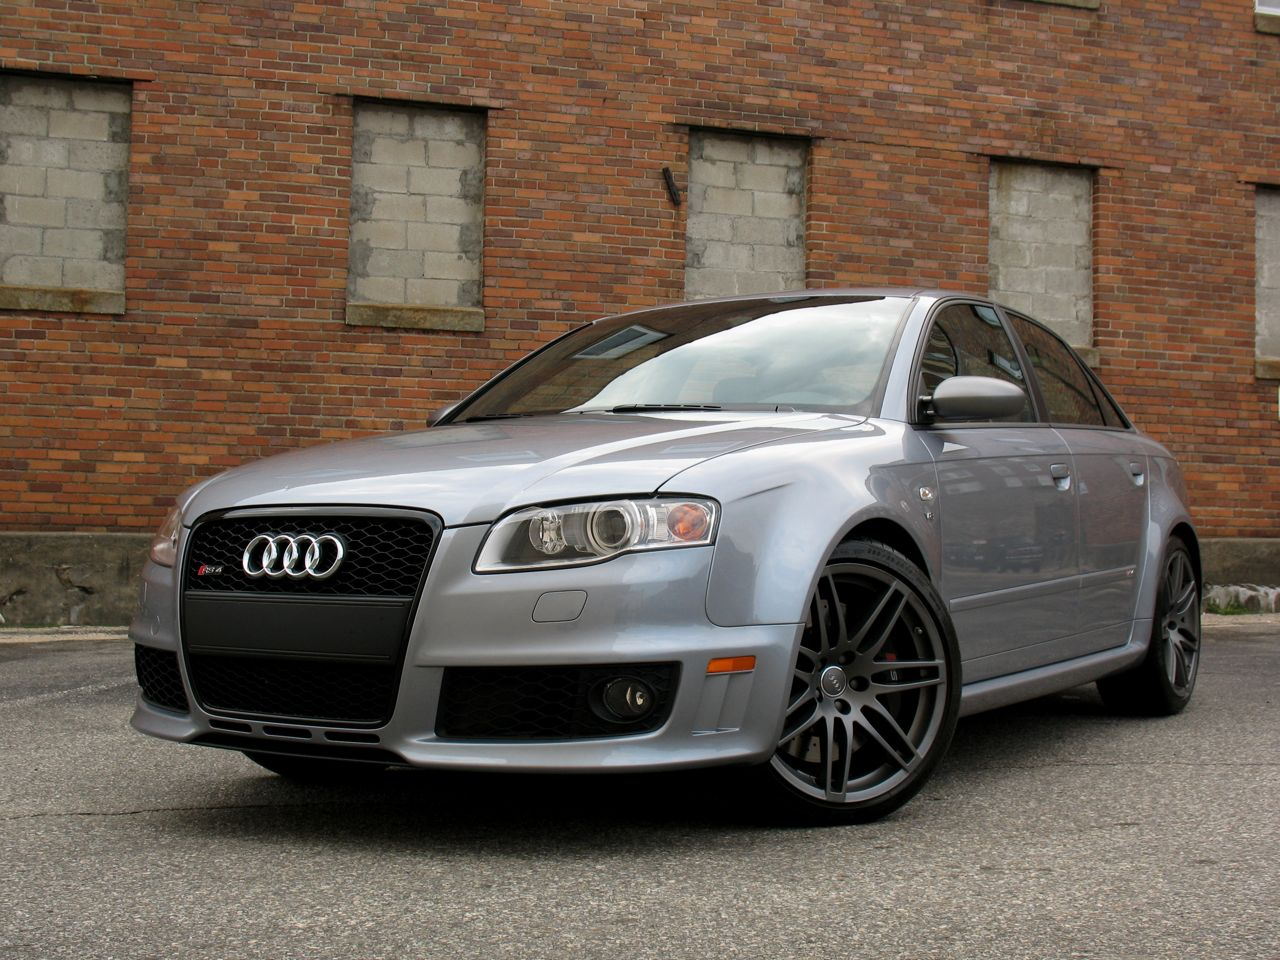 Audi Certified Pre Owned >> Review: 2008 Audi RS4 Photo Gallery - Autoblog